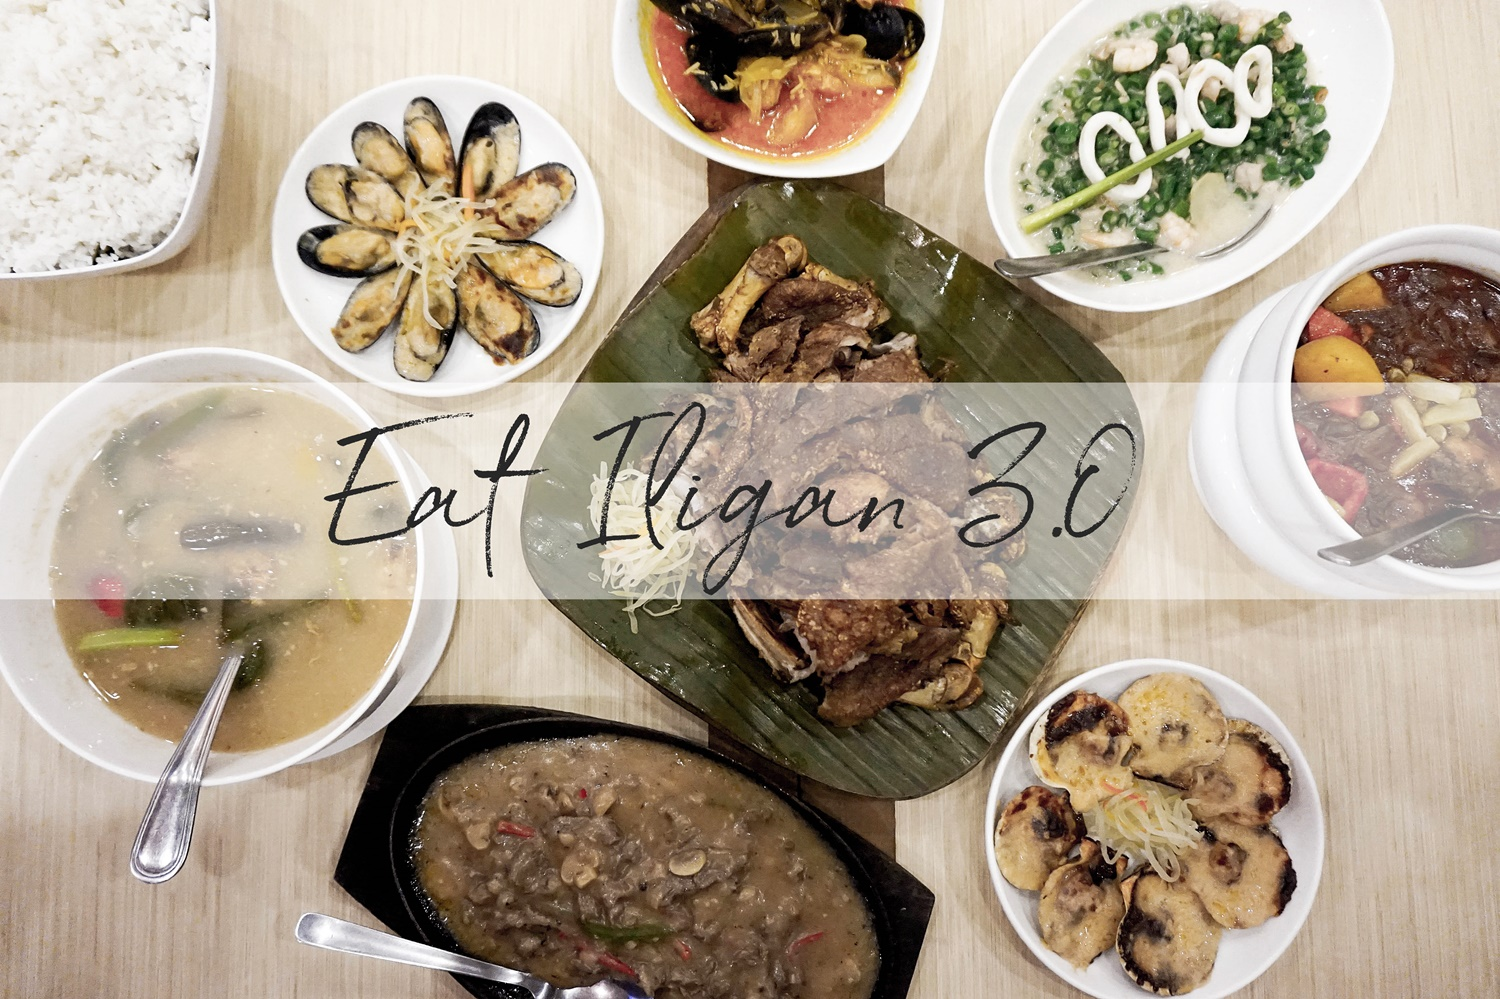 Eat Iligan 3.0 Highlights